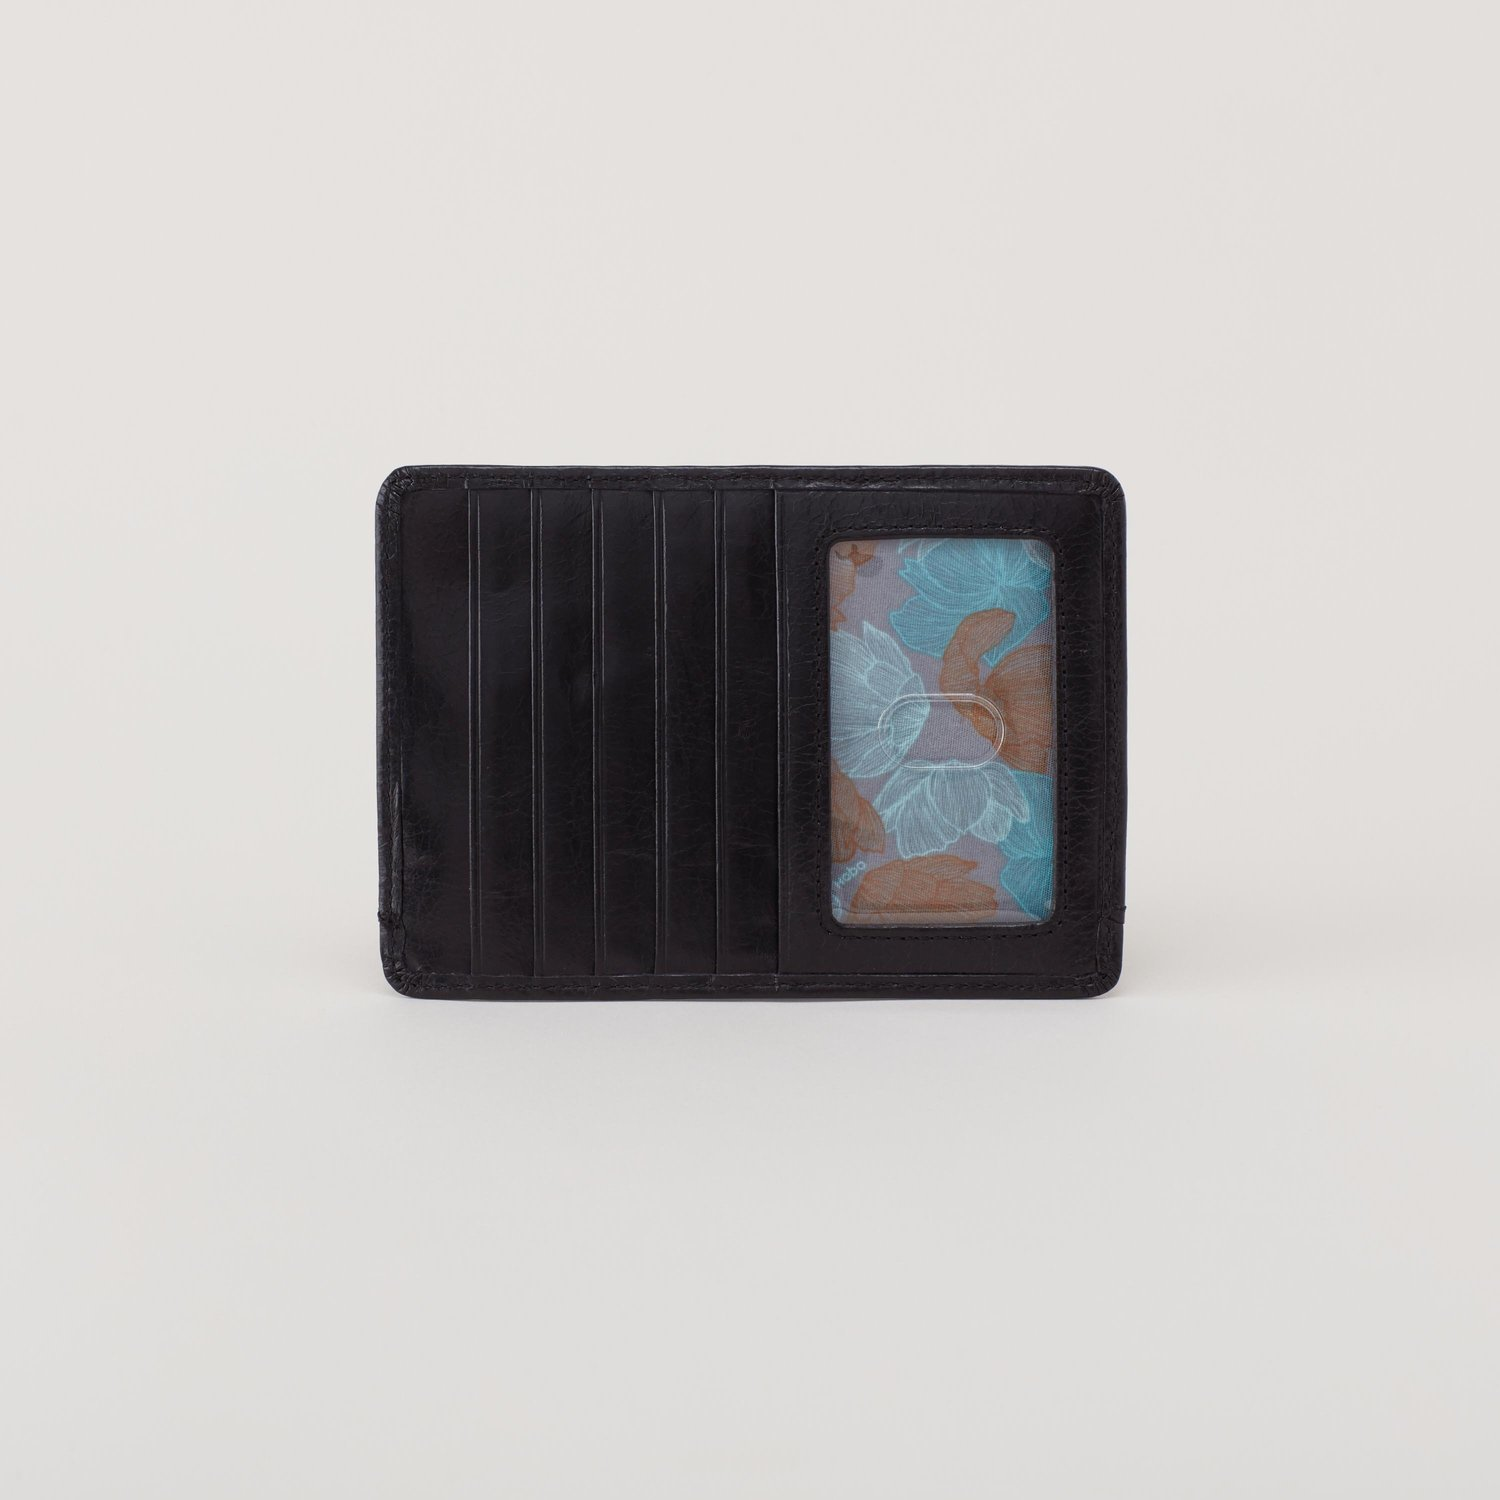 EURO SLIDE CREDIT CARD WALLET - HOBO